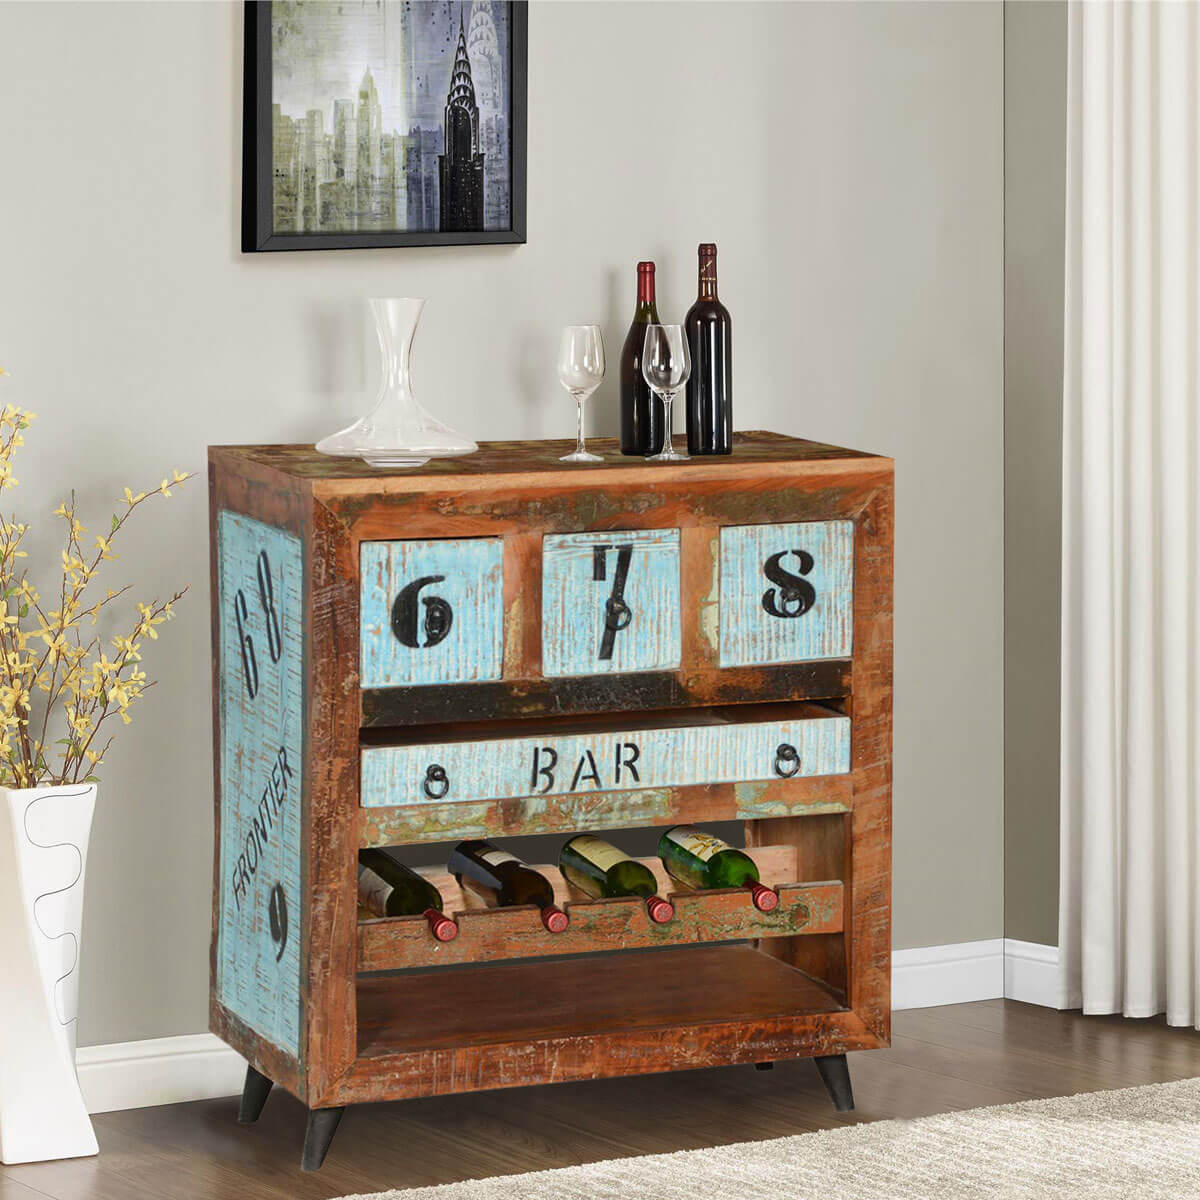 Hazlet By-The-Numbers Reclaimed Wood Wine Rack Bar Cabinet